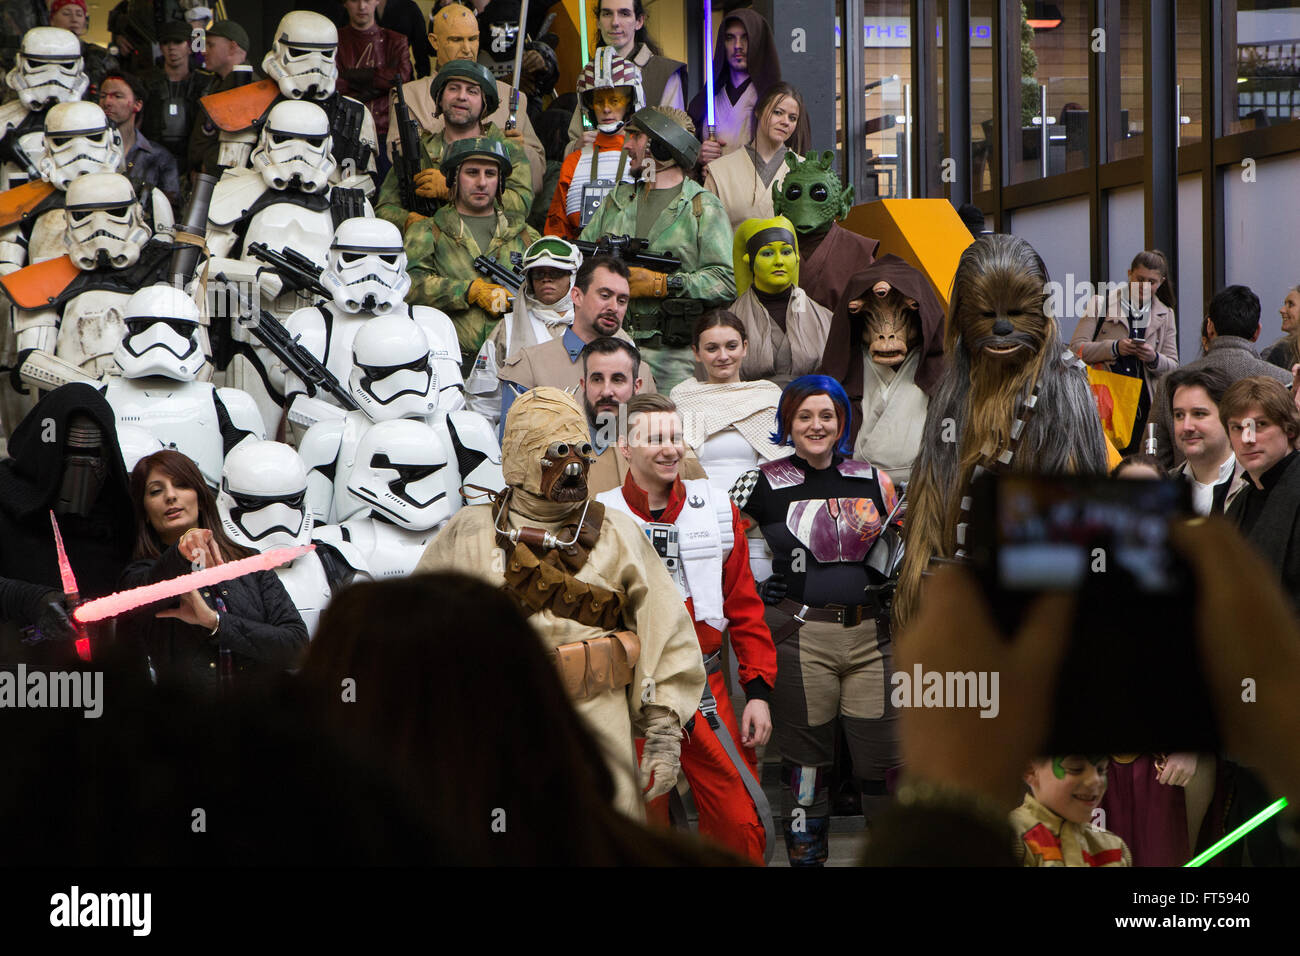 Star Wars characters at Cosplay event - Stock Image